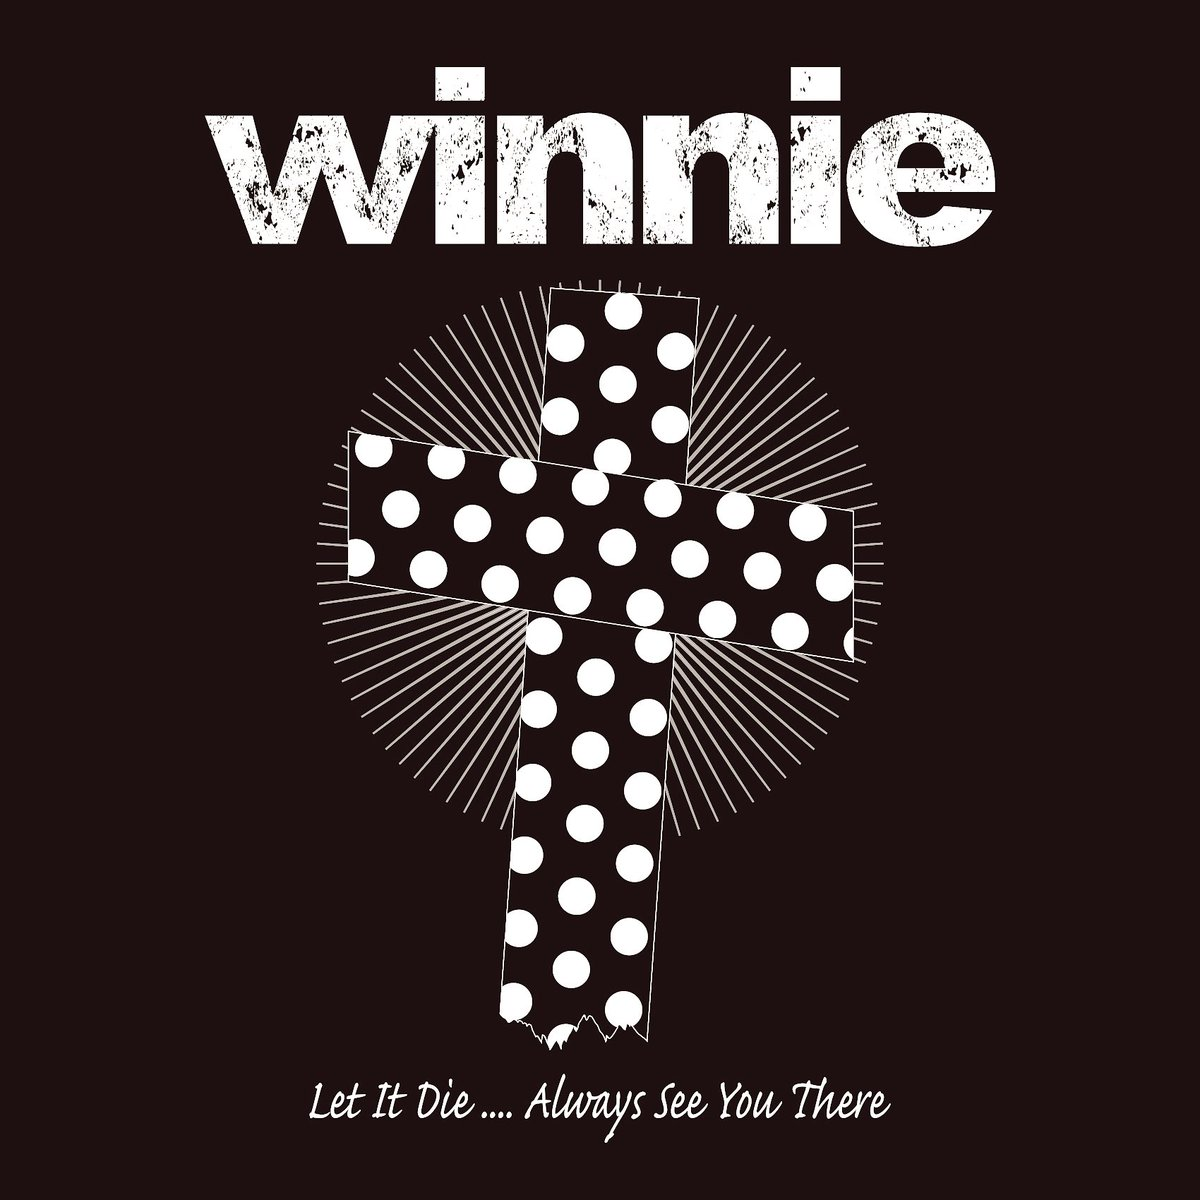 【winnie 15周年Anniversary第一弾】1/18、Digital Single 「Let It Die...Always See You There」Releaseします!世界中の皆さんよろしくお願いします!! https://t.co/hTmfLOA4n2